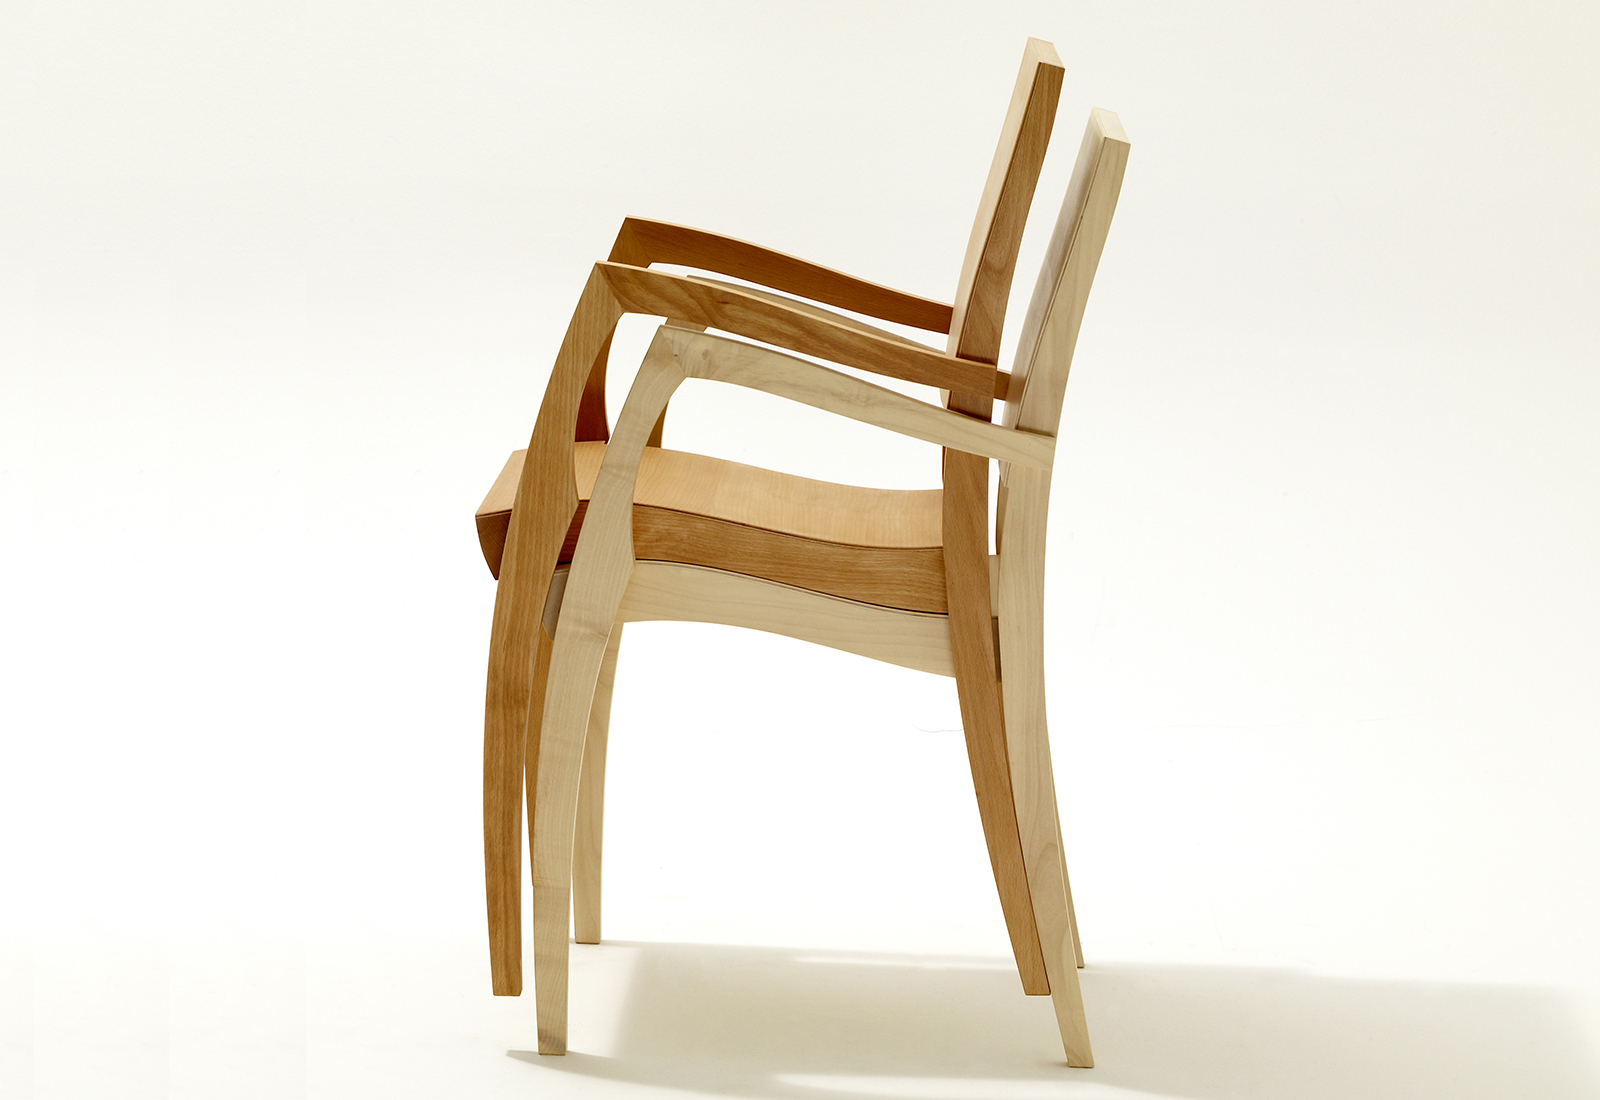 Stackable Chair Grasshopper2 By Sixay Furniture Solid Wood